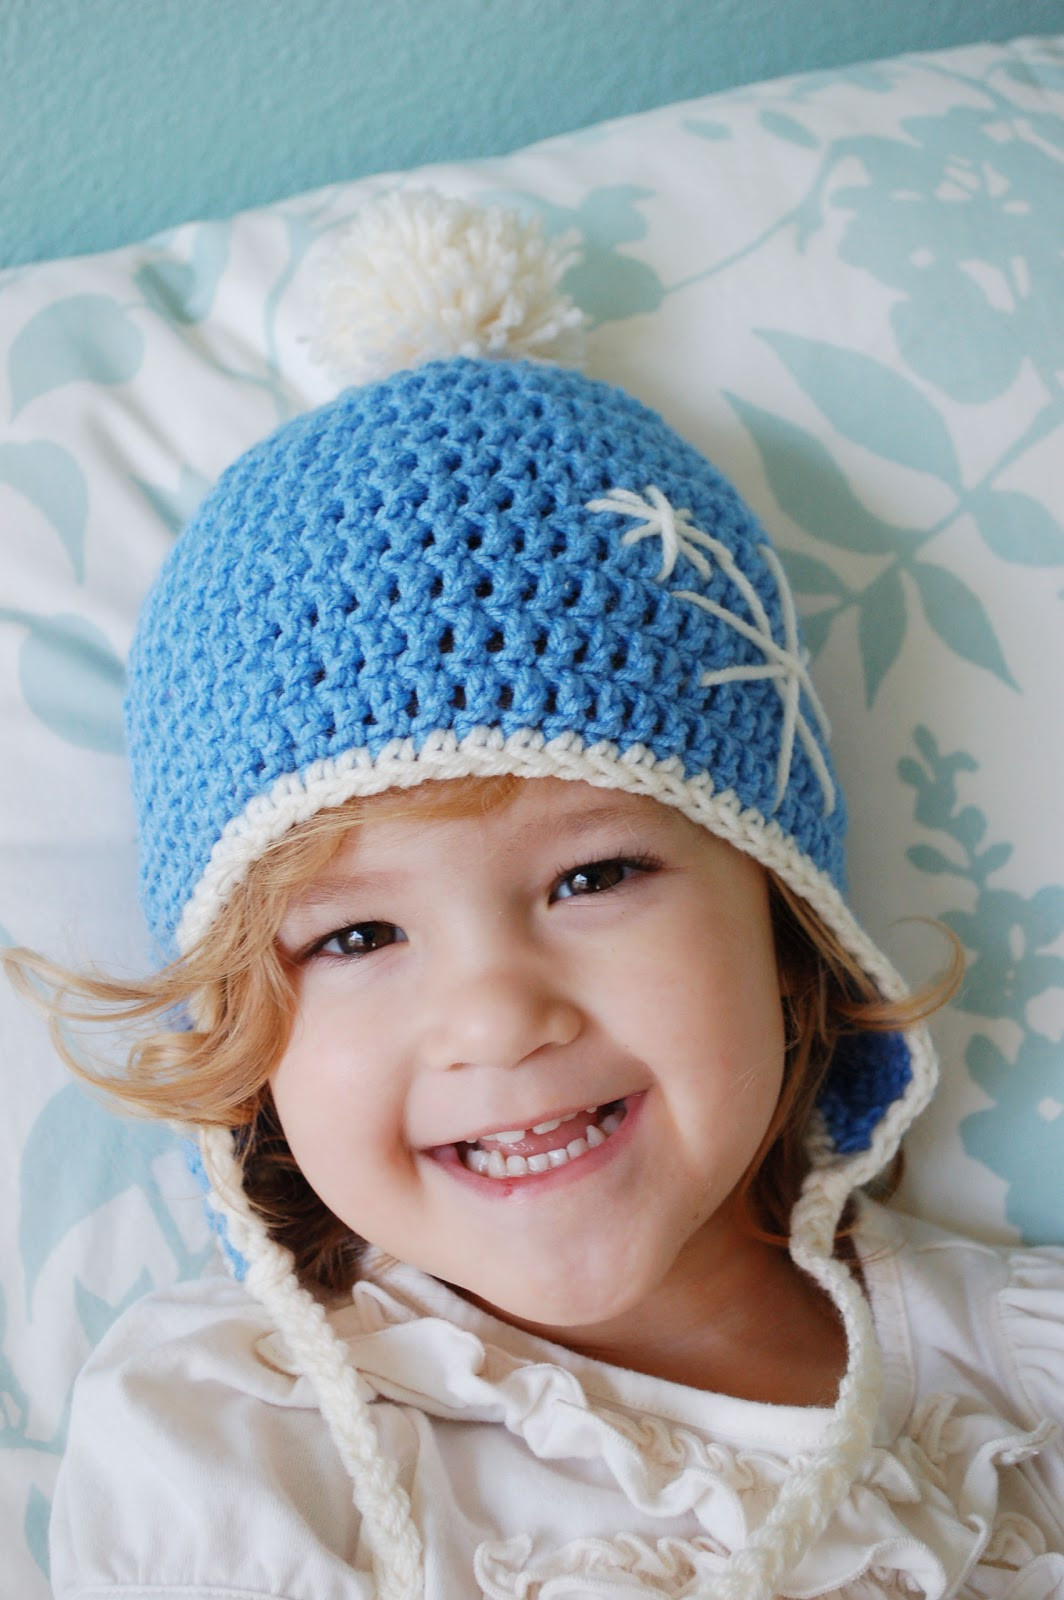 Luxury Free Crochet Patterns for Baby Hats with Ear Flaps Crochet toddler Hat Pattern Of Delightful 40 Ideas Crochet toddler Hat Pattern